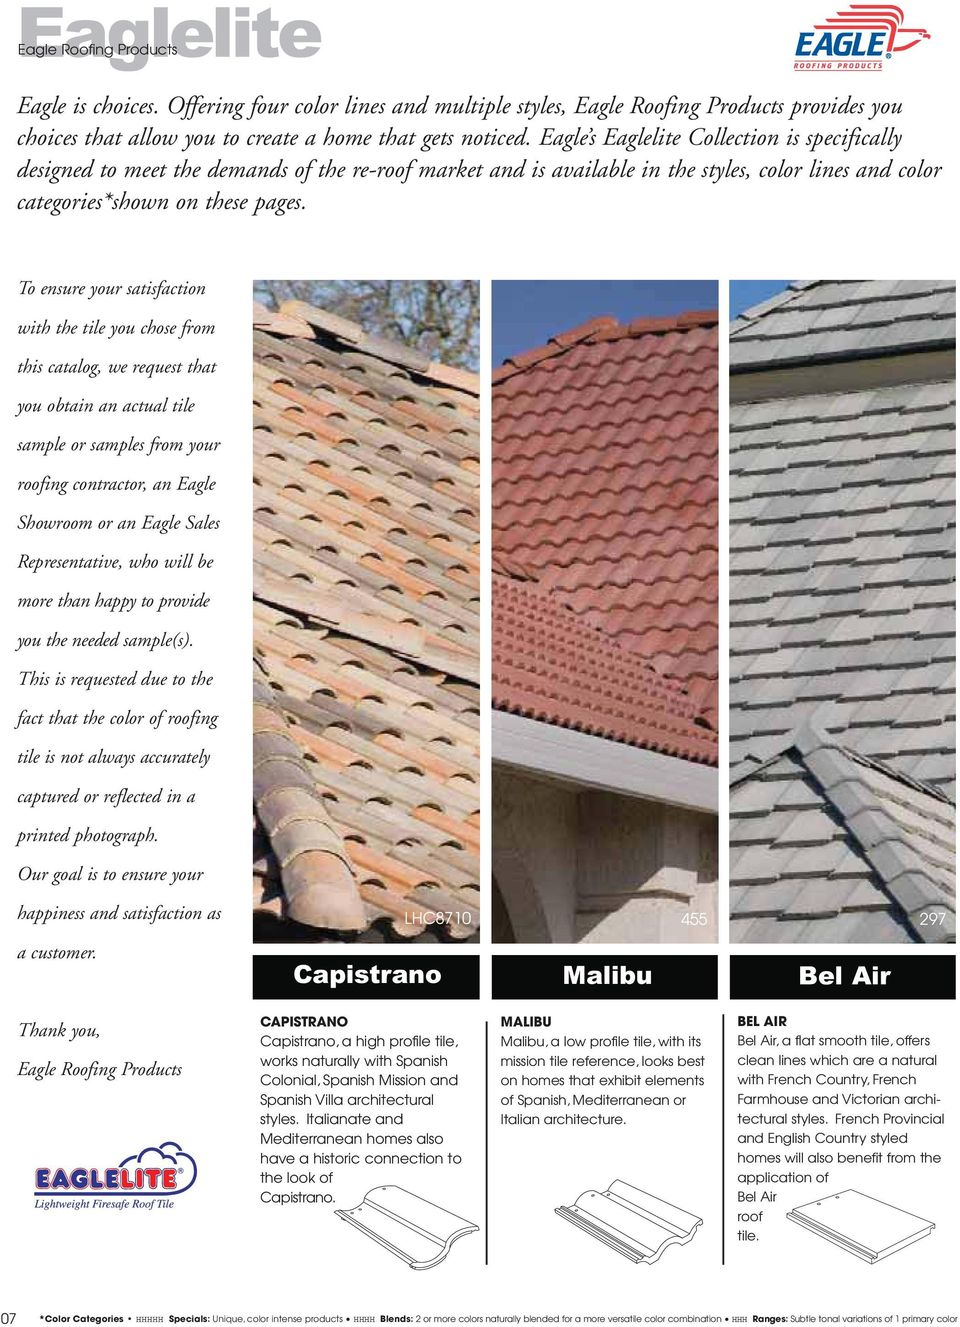 Belair 4679 Light Gray Range Eclectic Exterior Los Angeles By Eagle Roofing S